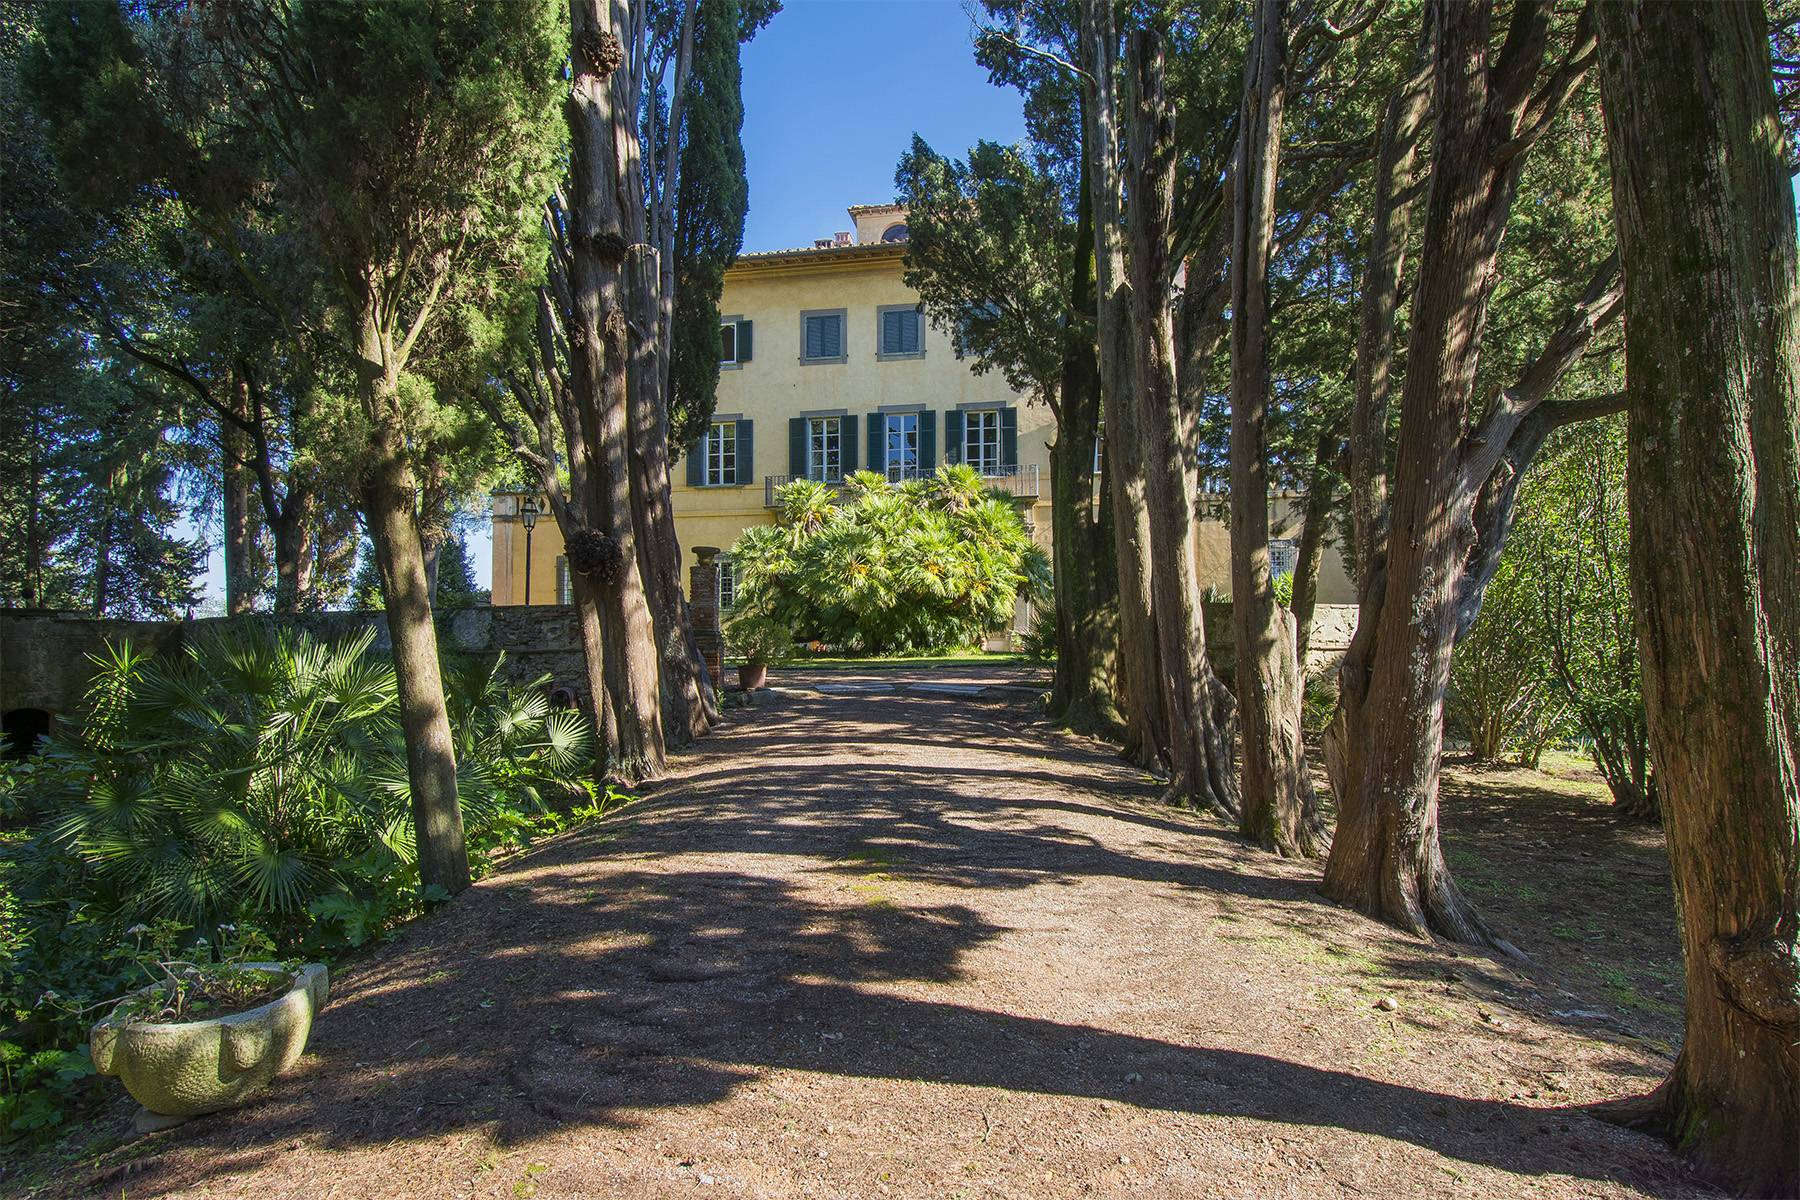 Charming Medicean Villa on the Tuscan hills - 29